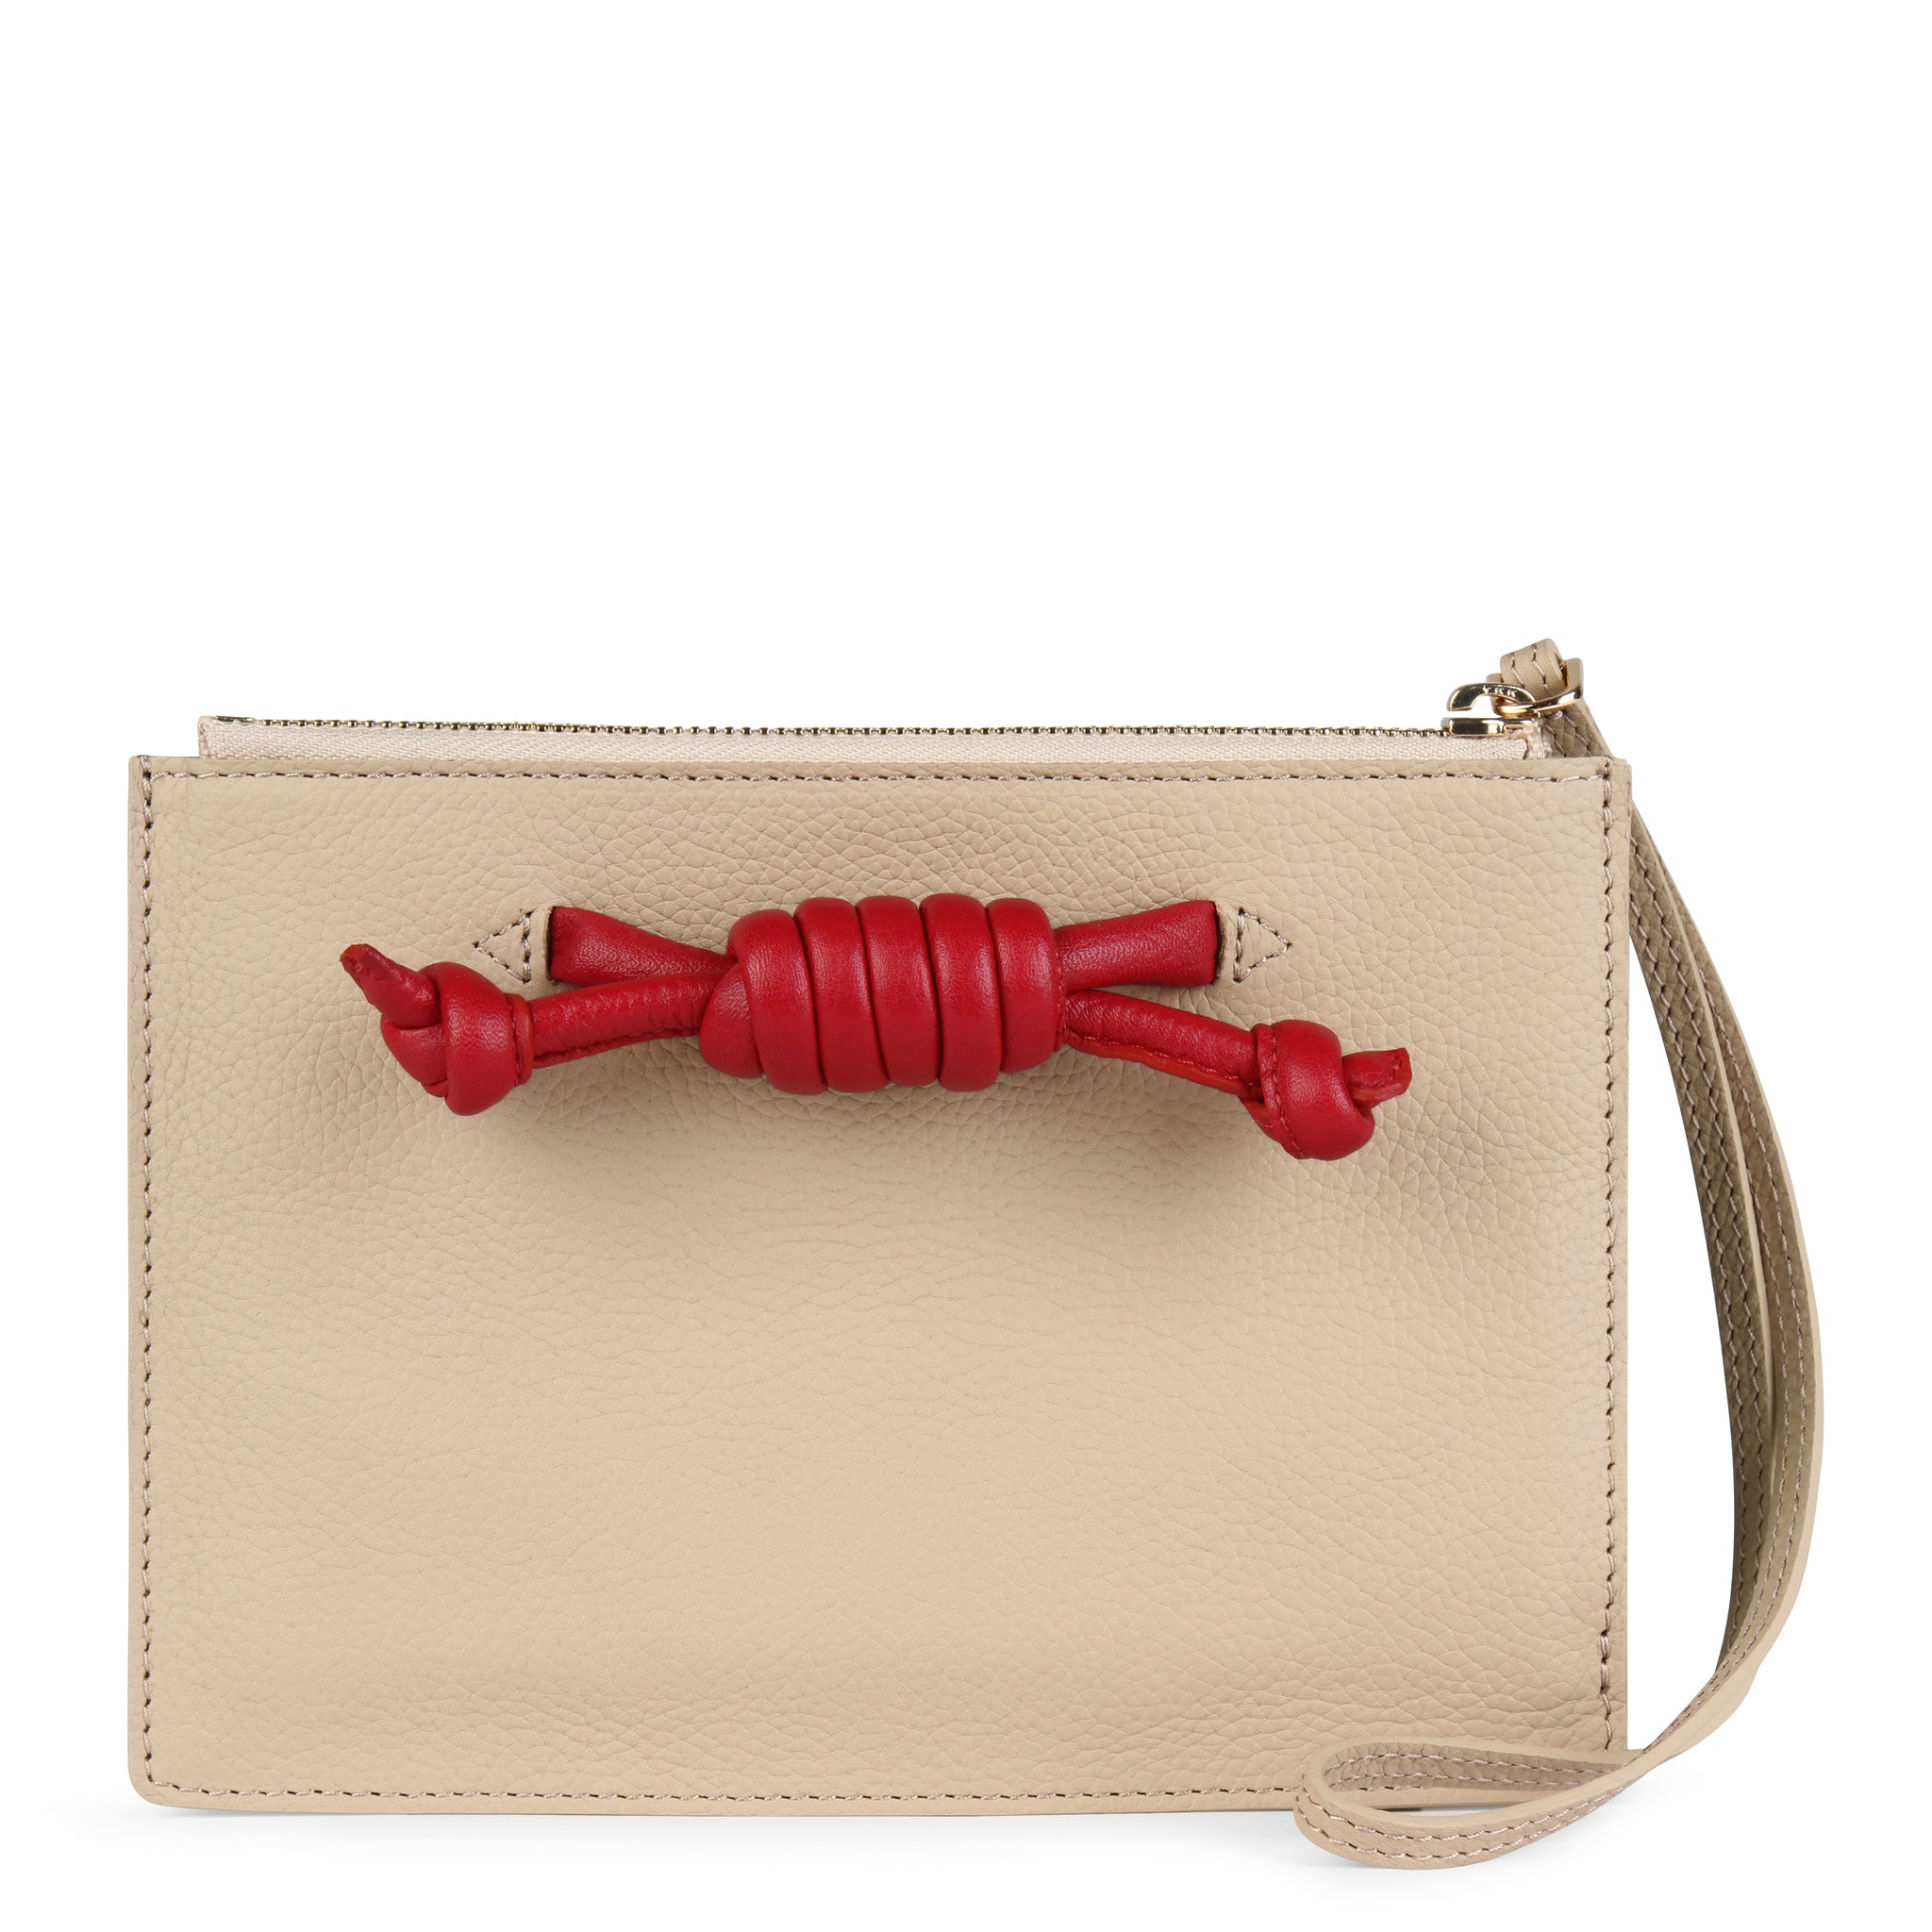 Detachable clutch in nude with red knot detail, front image.